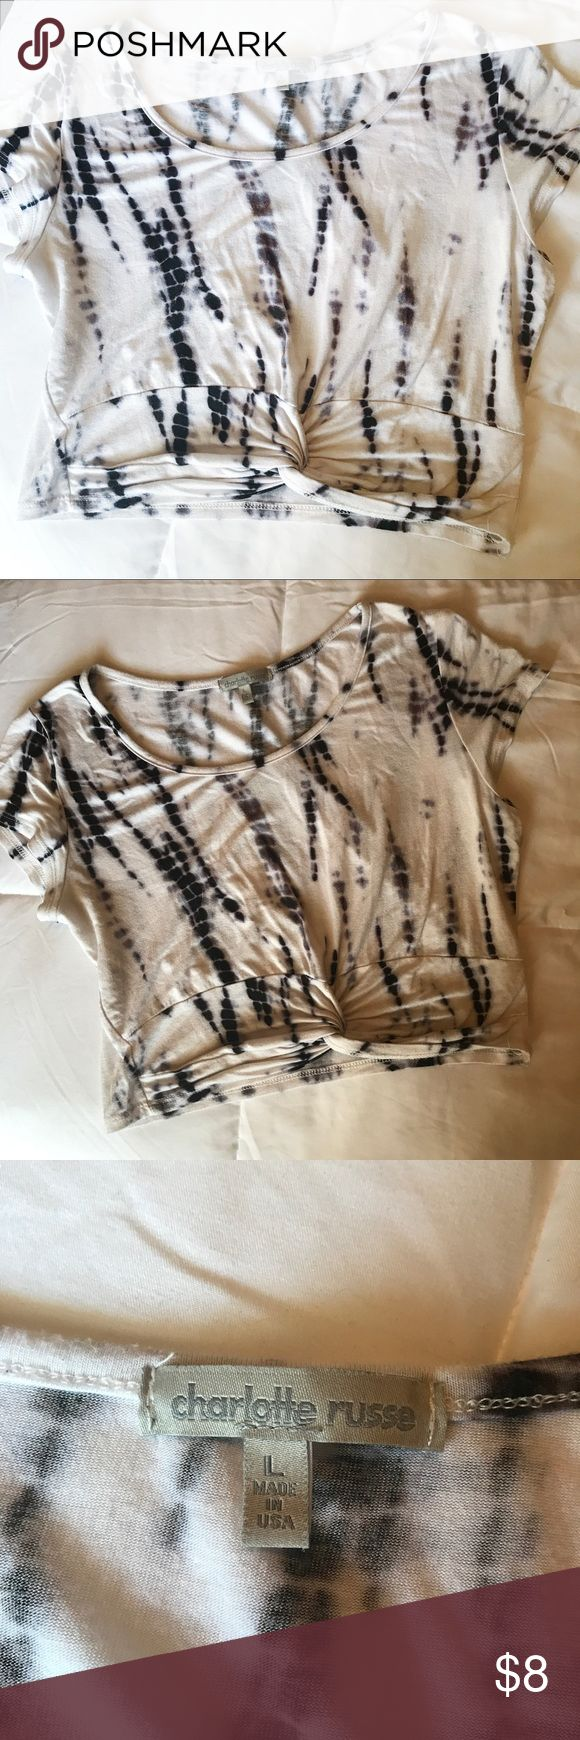 🍷Tie Dye Crop Top White and black tie Dye crop top with knot detail along bottom. Good condition. Super soft and comfy. Smoke free home. Charlotte Russe Tops Crop Tops